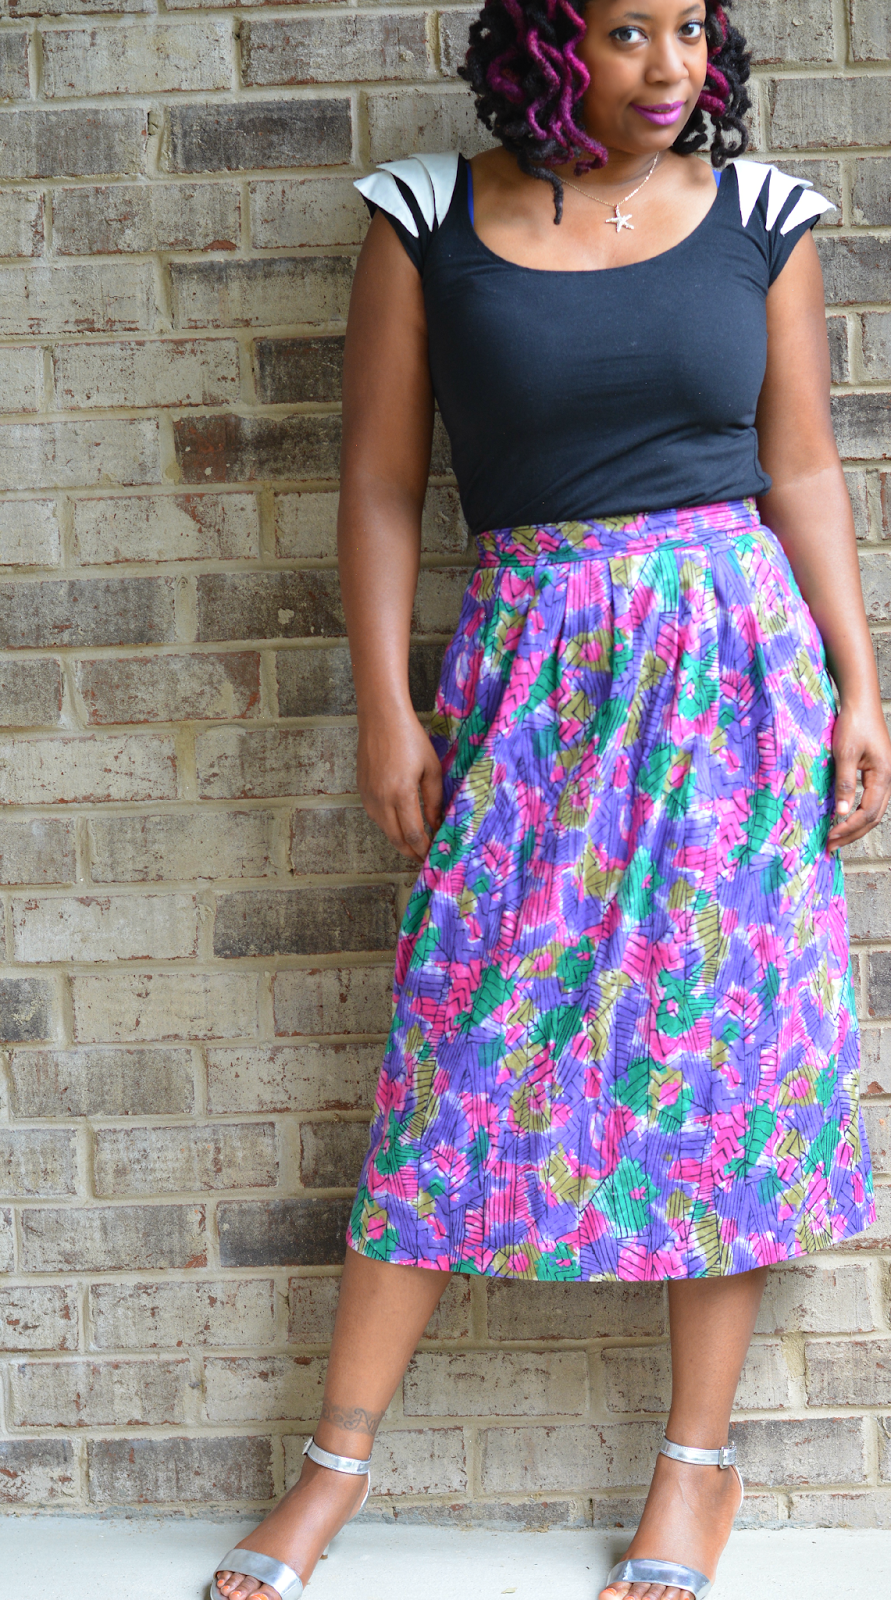 Casual summer skirt from a thrift store. Easy to wear and affordable in many bright, fun colors for summer.